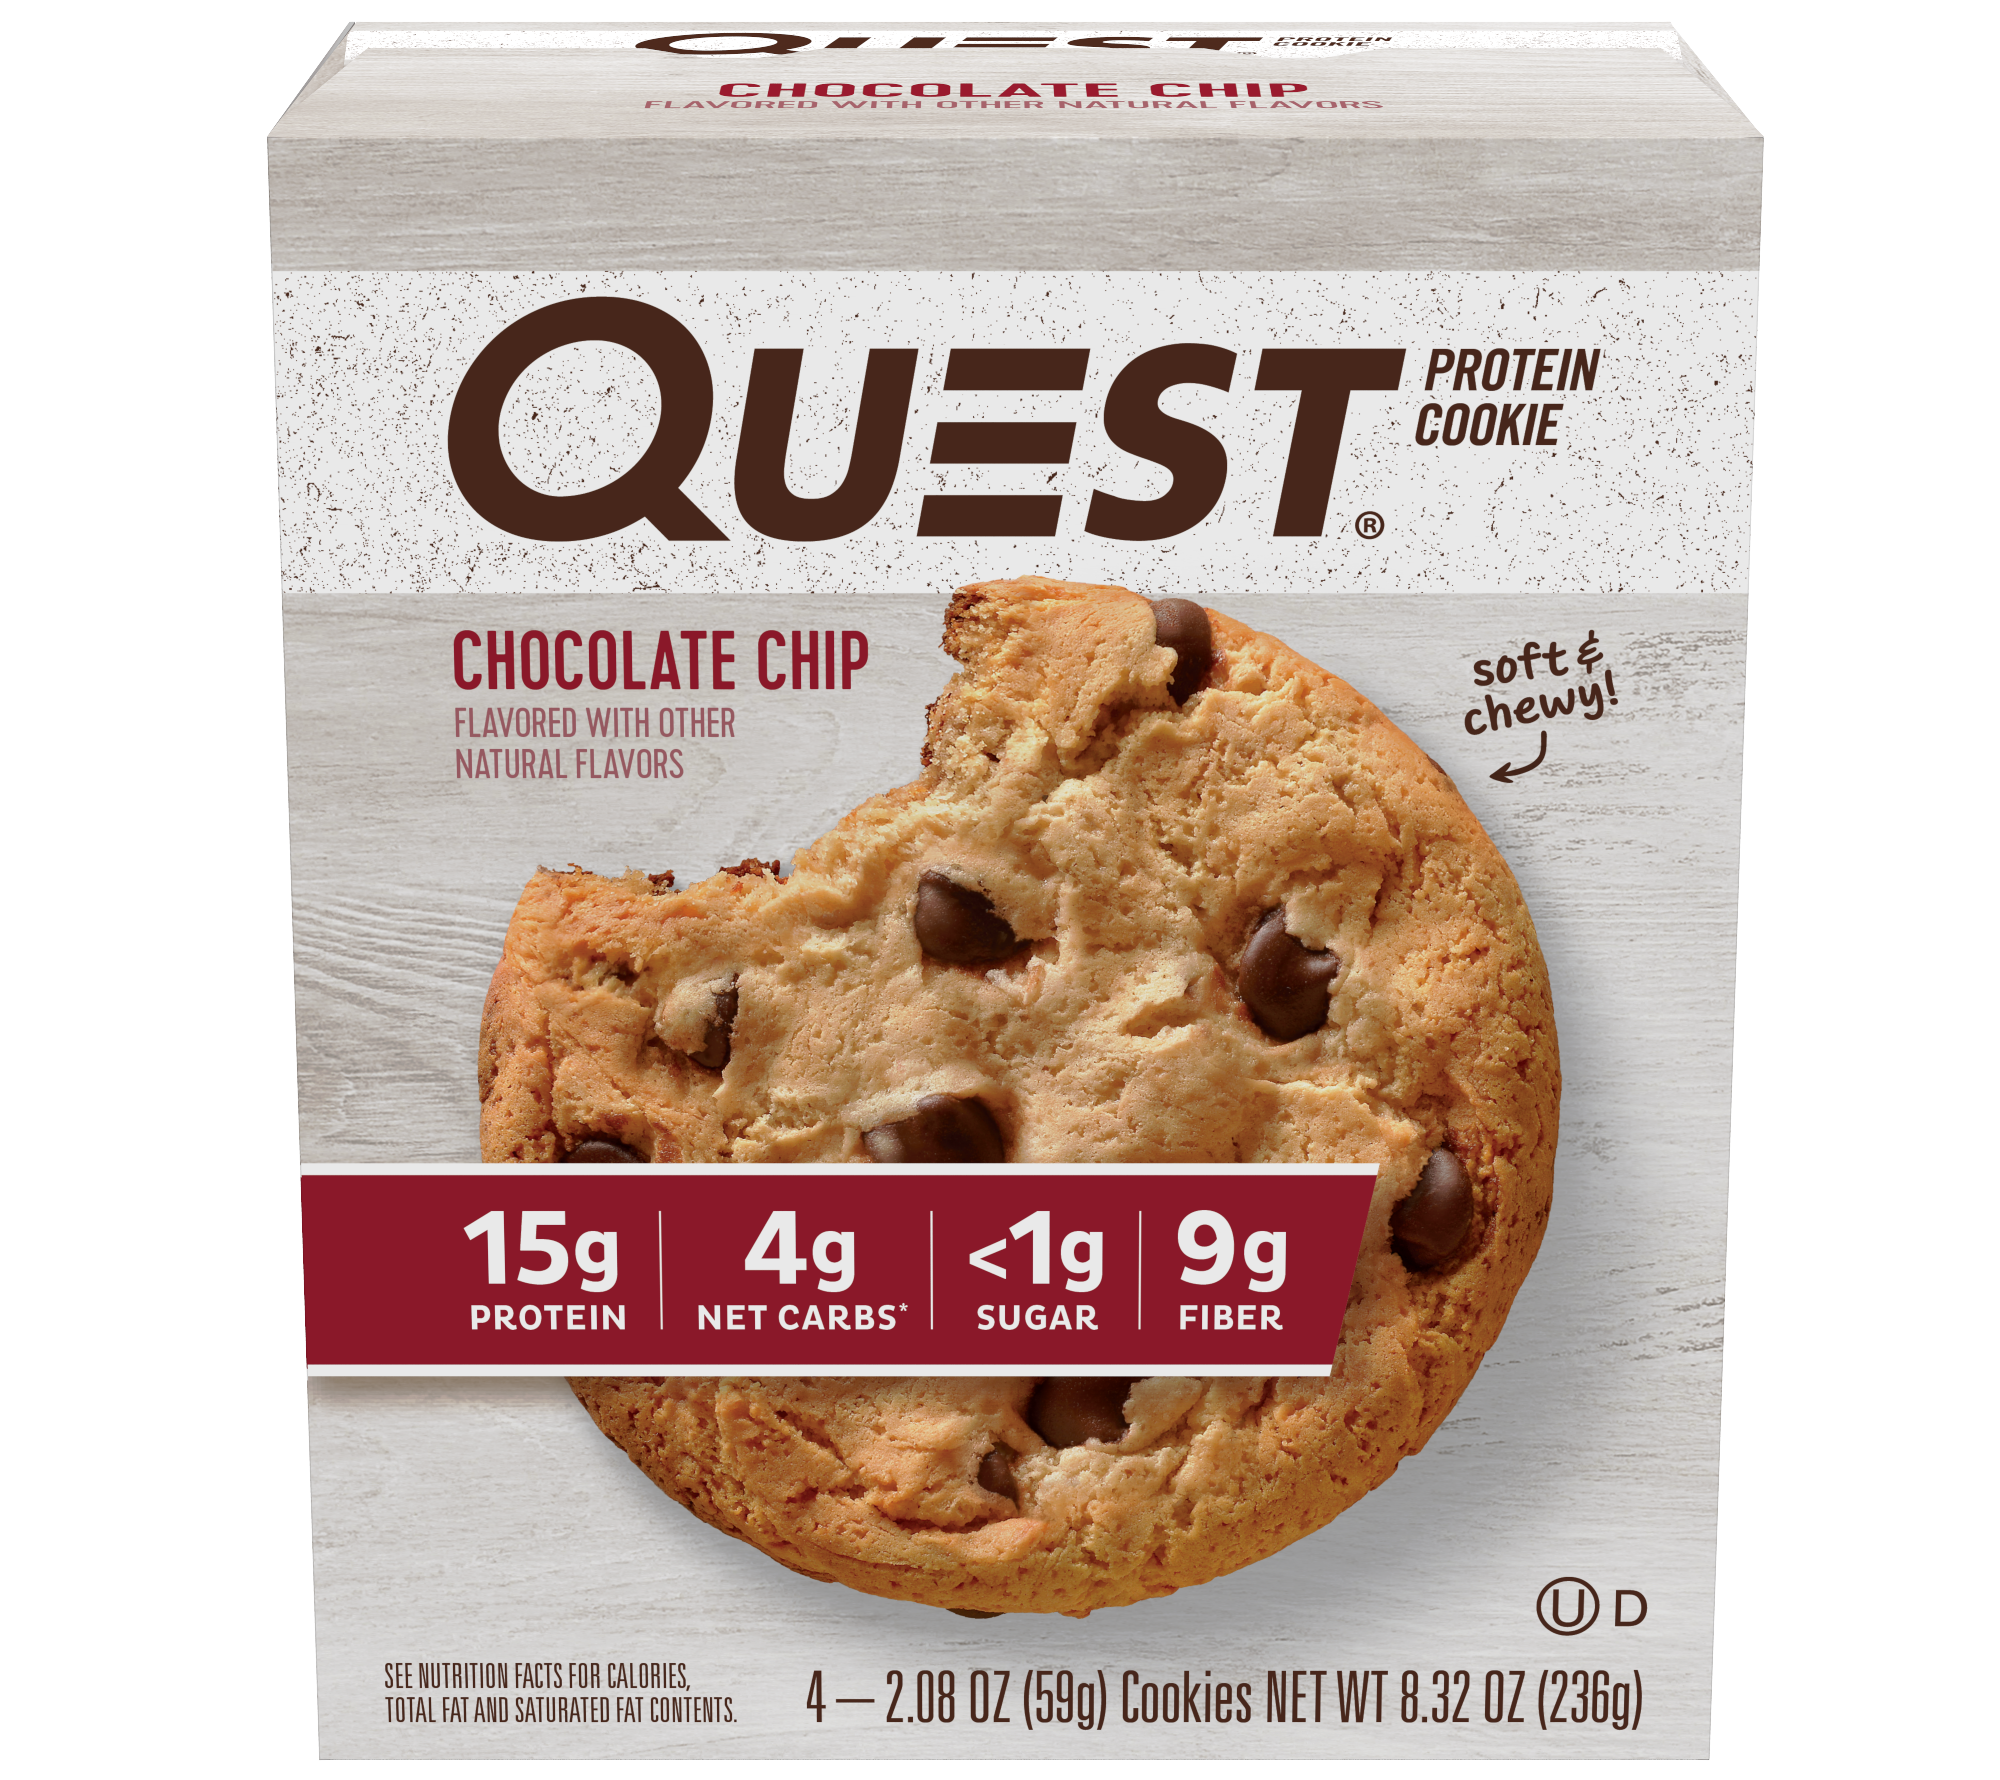 Quest Protein Cookie Chocolate Chip 15g Protein 4 Ct Walmart Com Protein Cookies Protein Cookies Chocolate Chocolate Chip